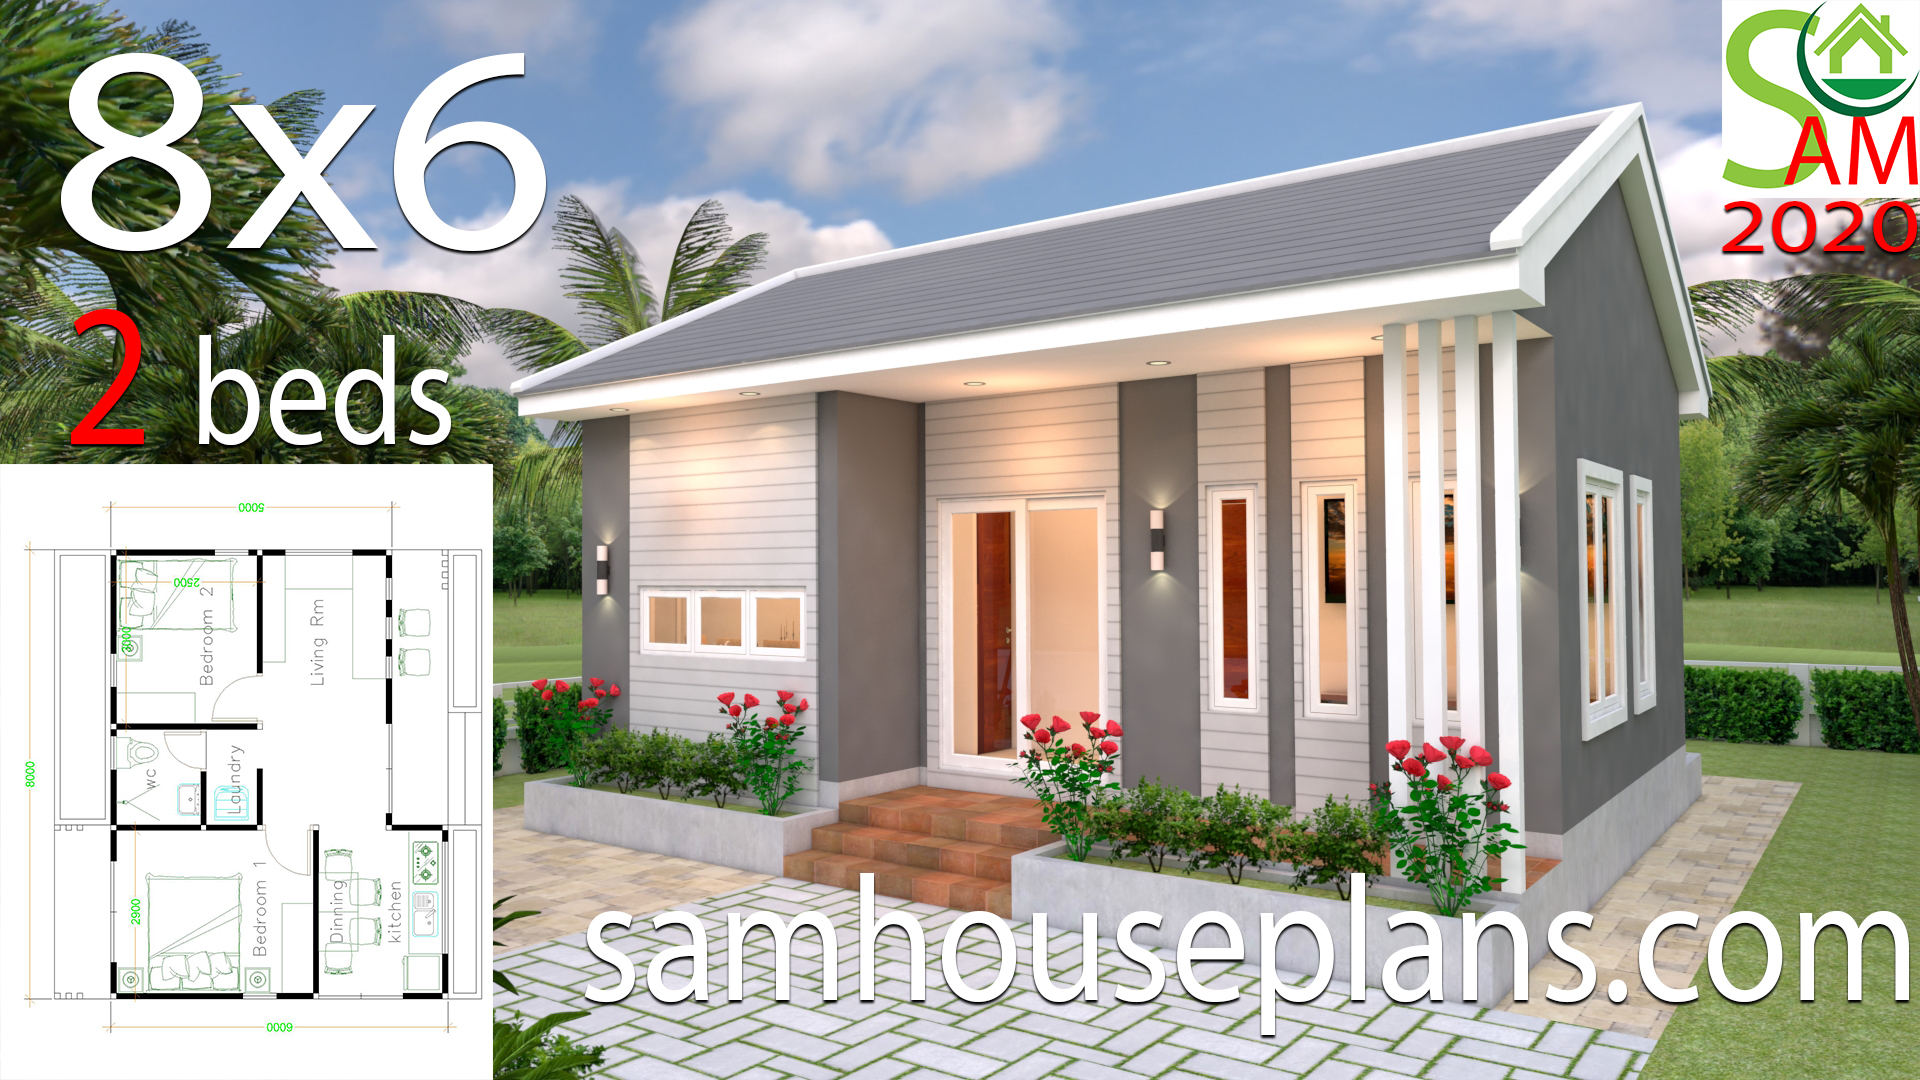 Small House Design Plans 8x6 With 2 Bedrooms Gable Roof Samhouseplans